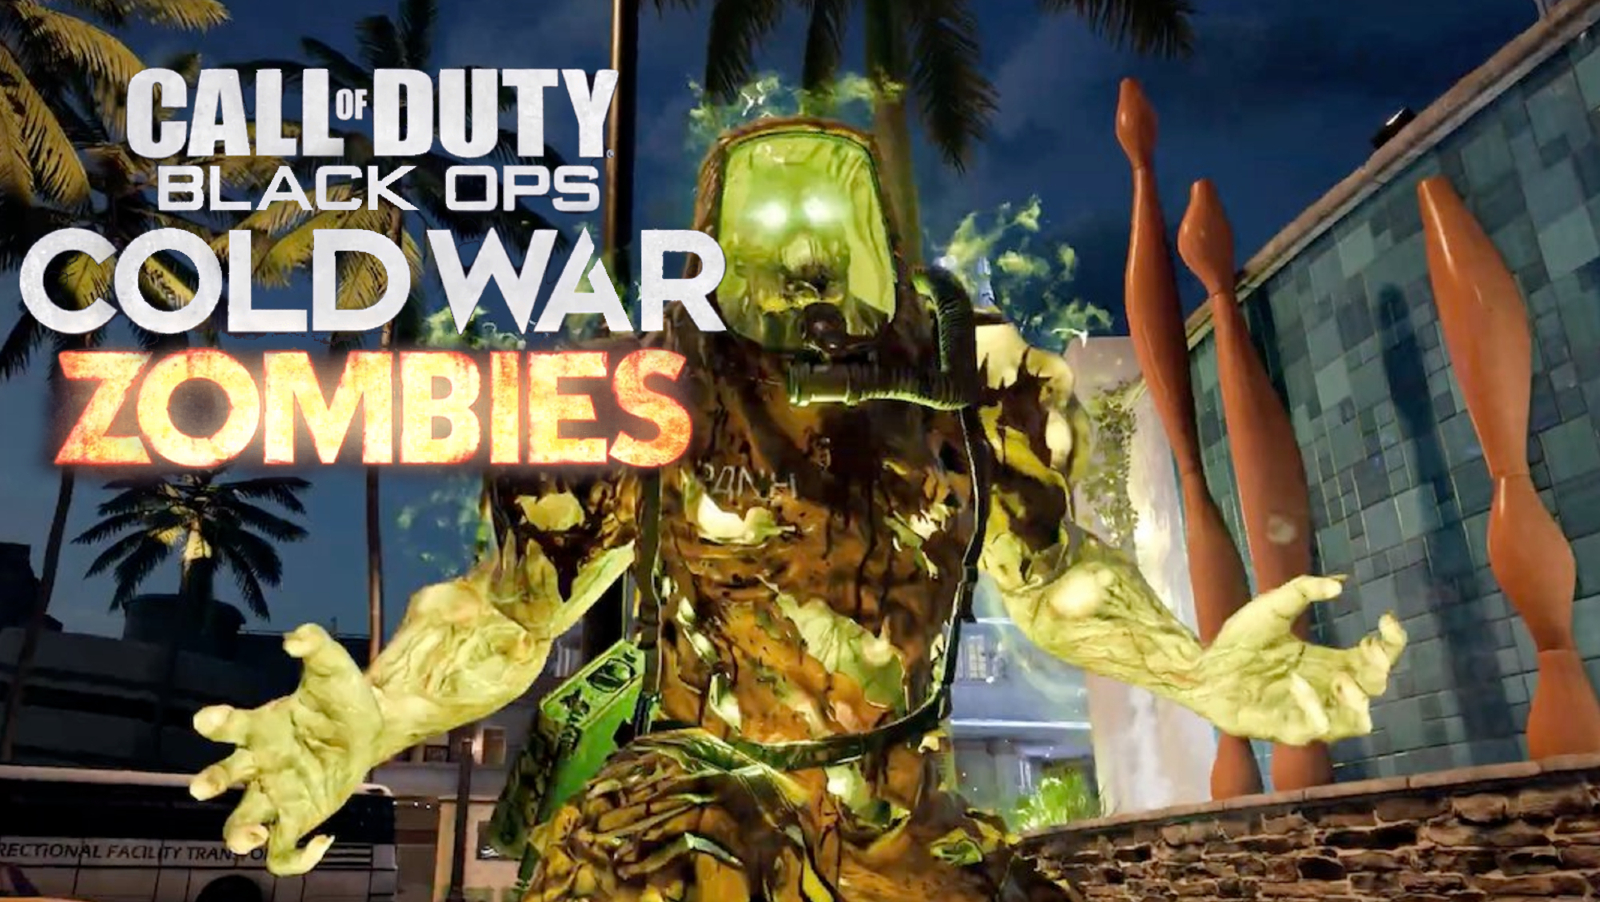 Call of Duty BOCW Zombies